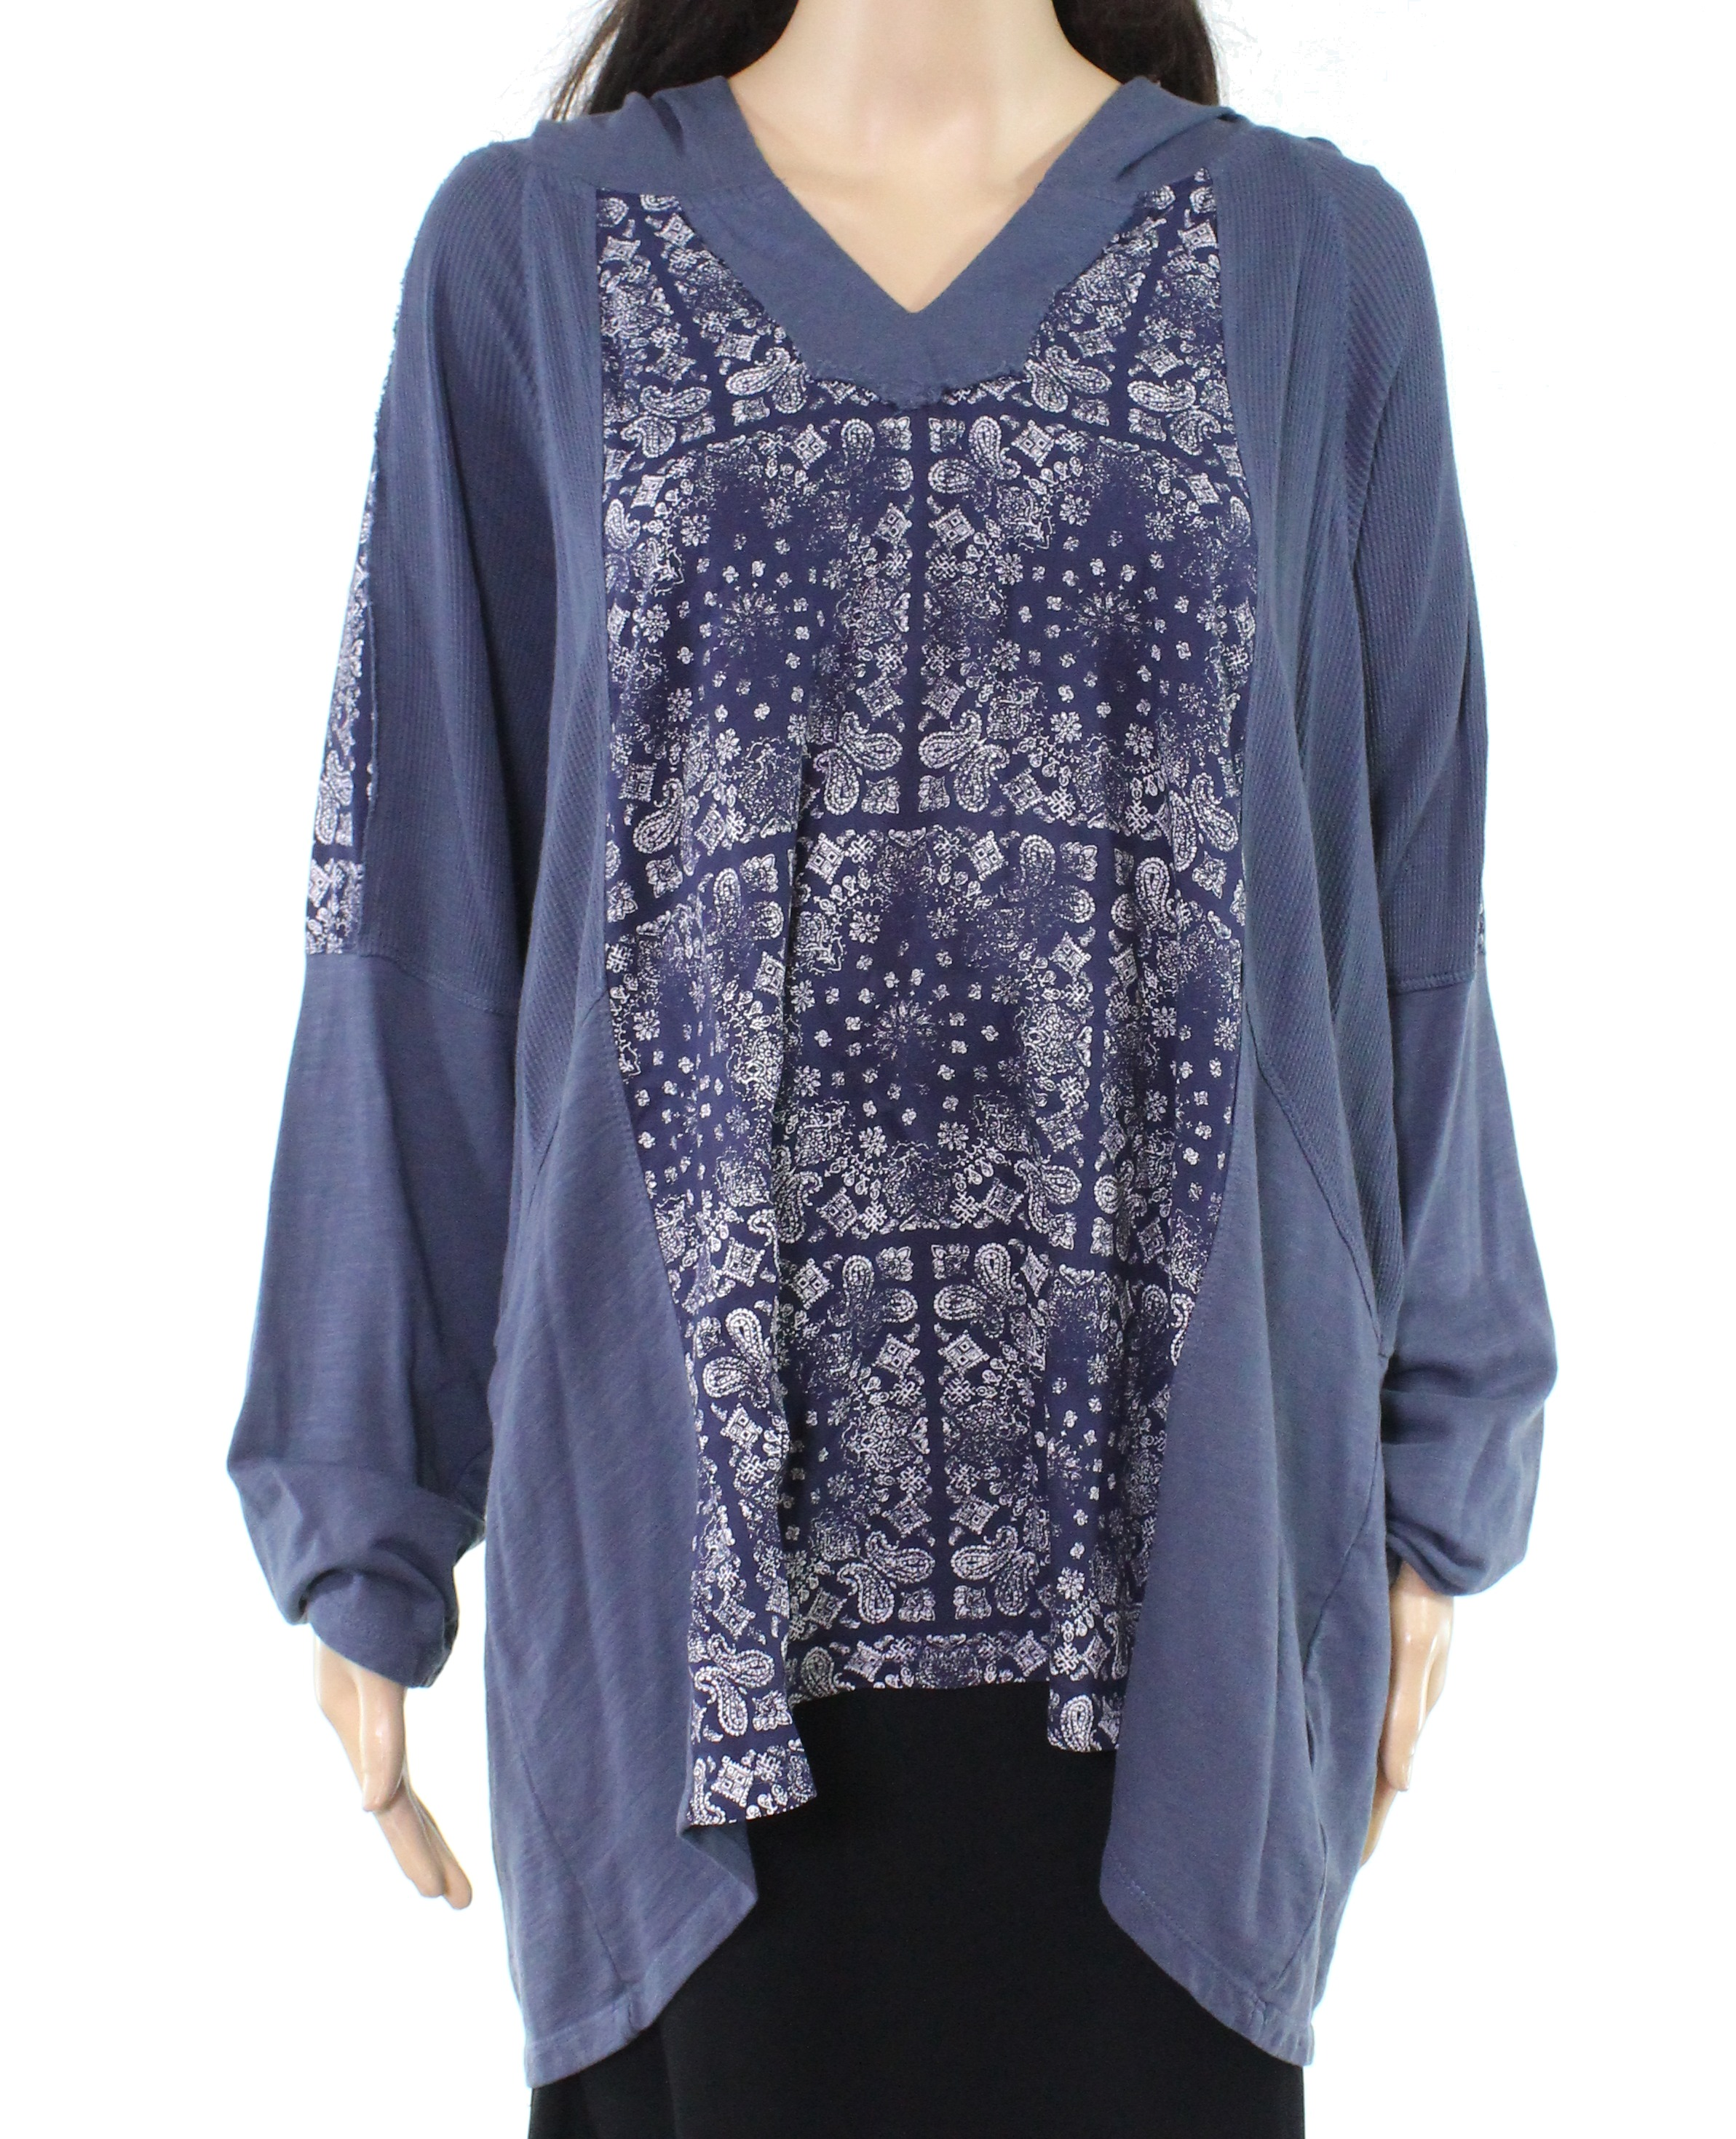 Style & Co. Womens Hoodie Blue USA Size 3X Plus Paisley Knit High Low $59 040